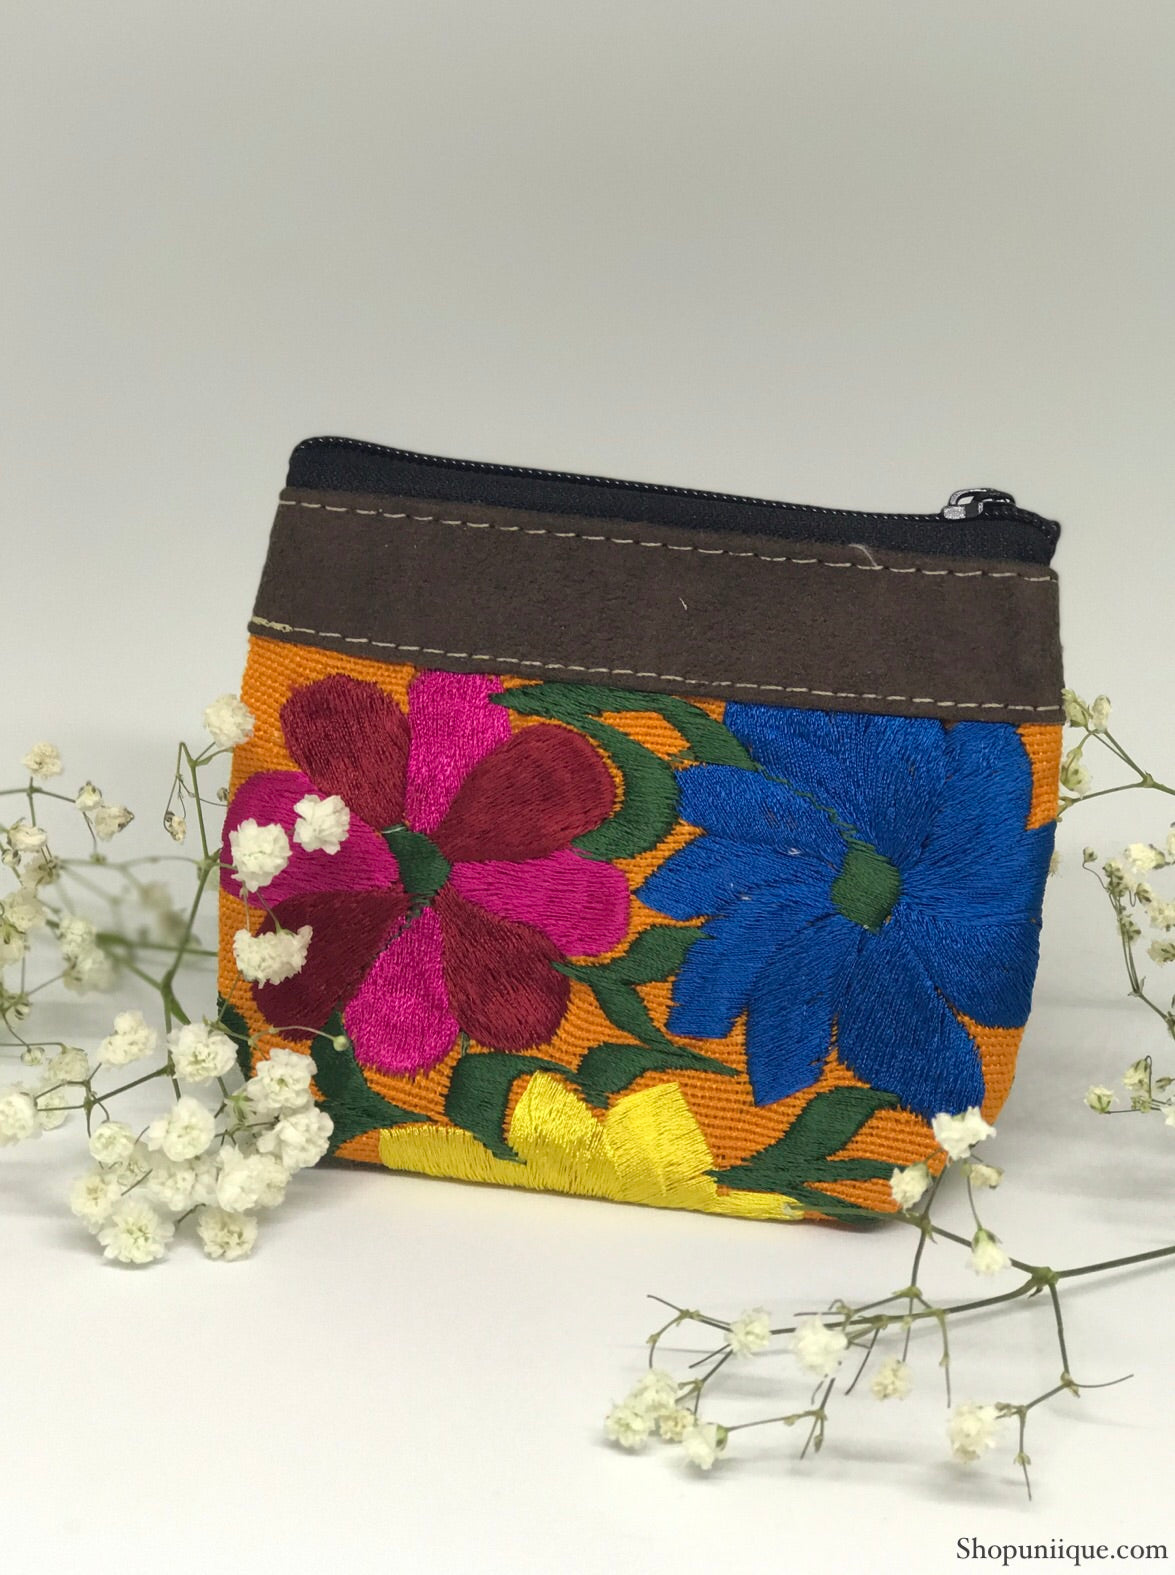 Tangerine Coin Purse